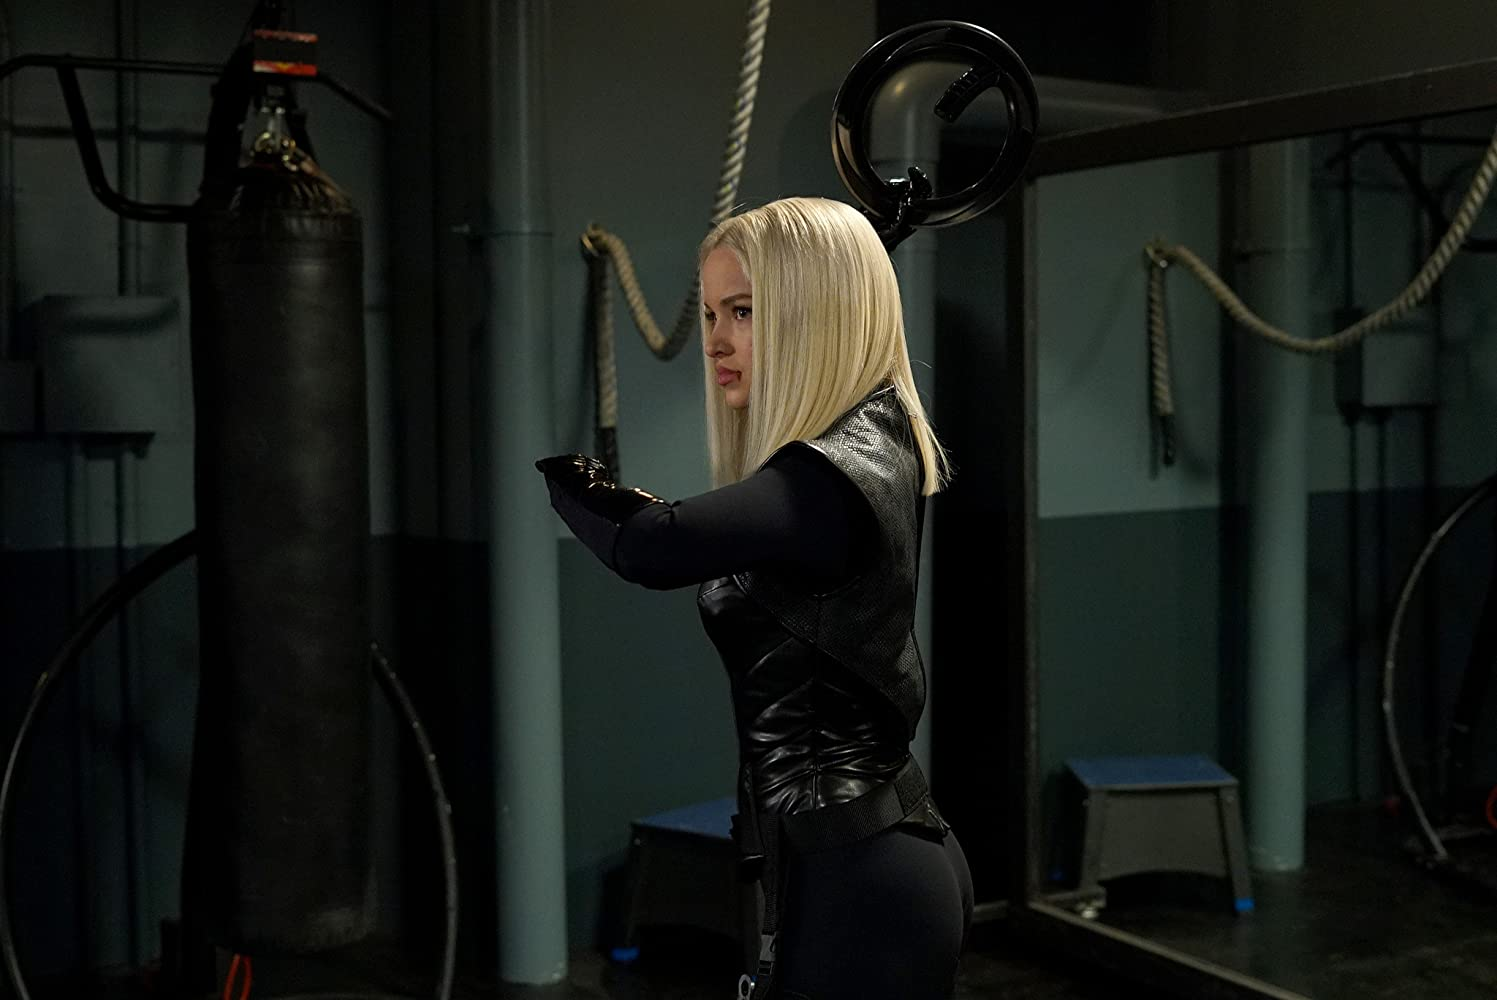 Dove Cameron in Agents of S.H.I.E.L.D. (2013)